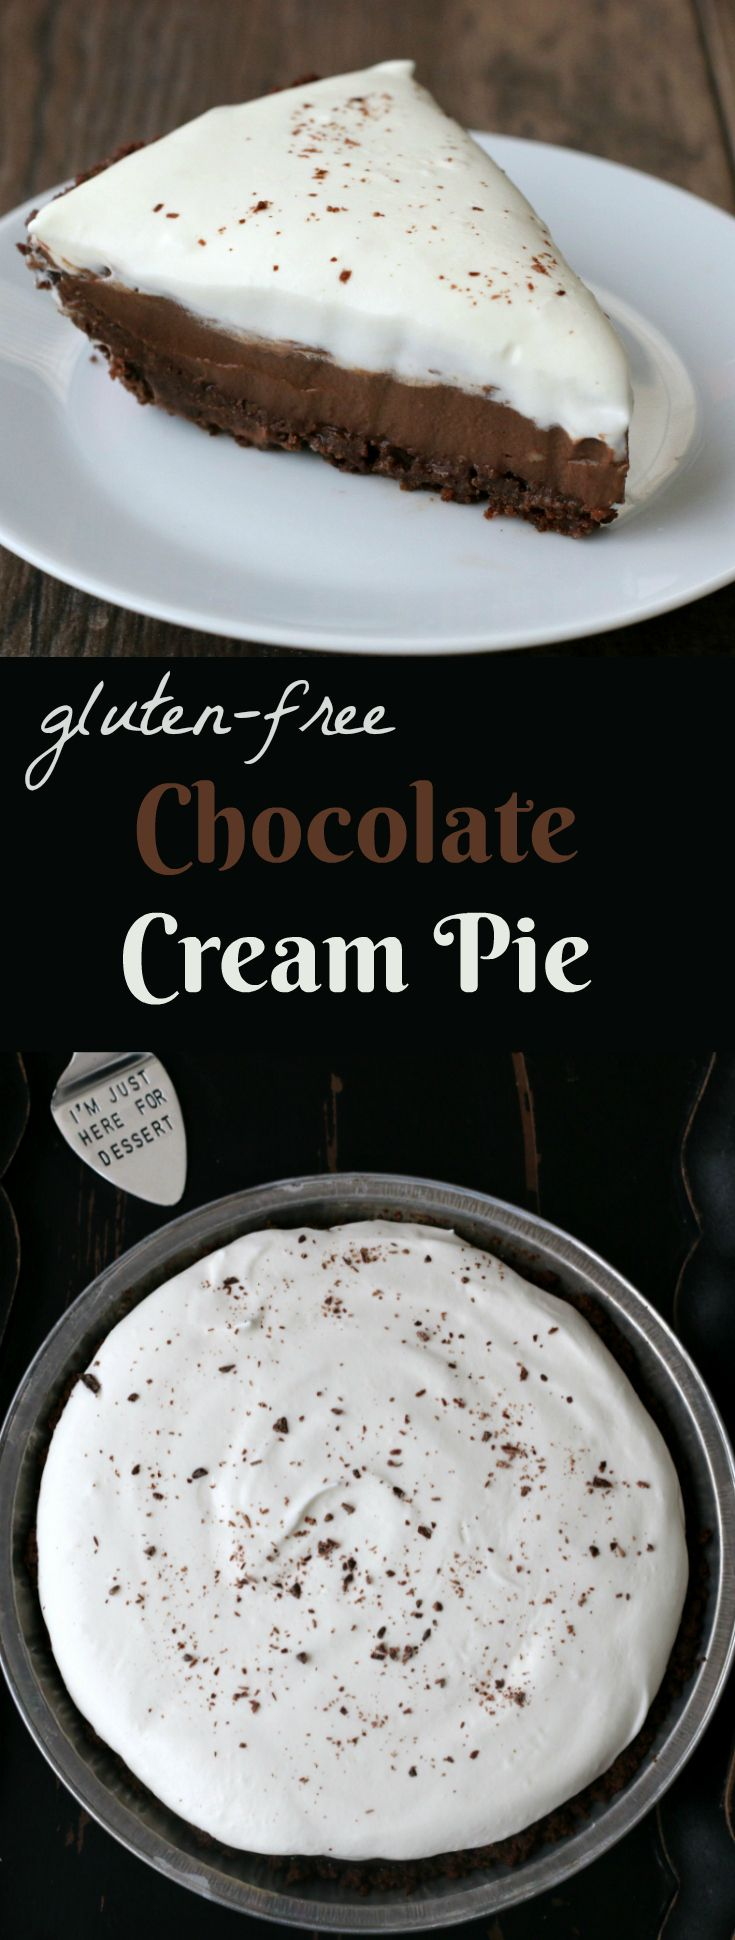 Gluten-free Chocolate Cream Pie Recipe. Perfect for the holidays or anytime!